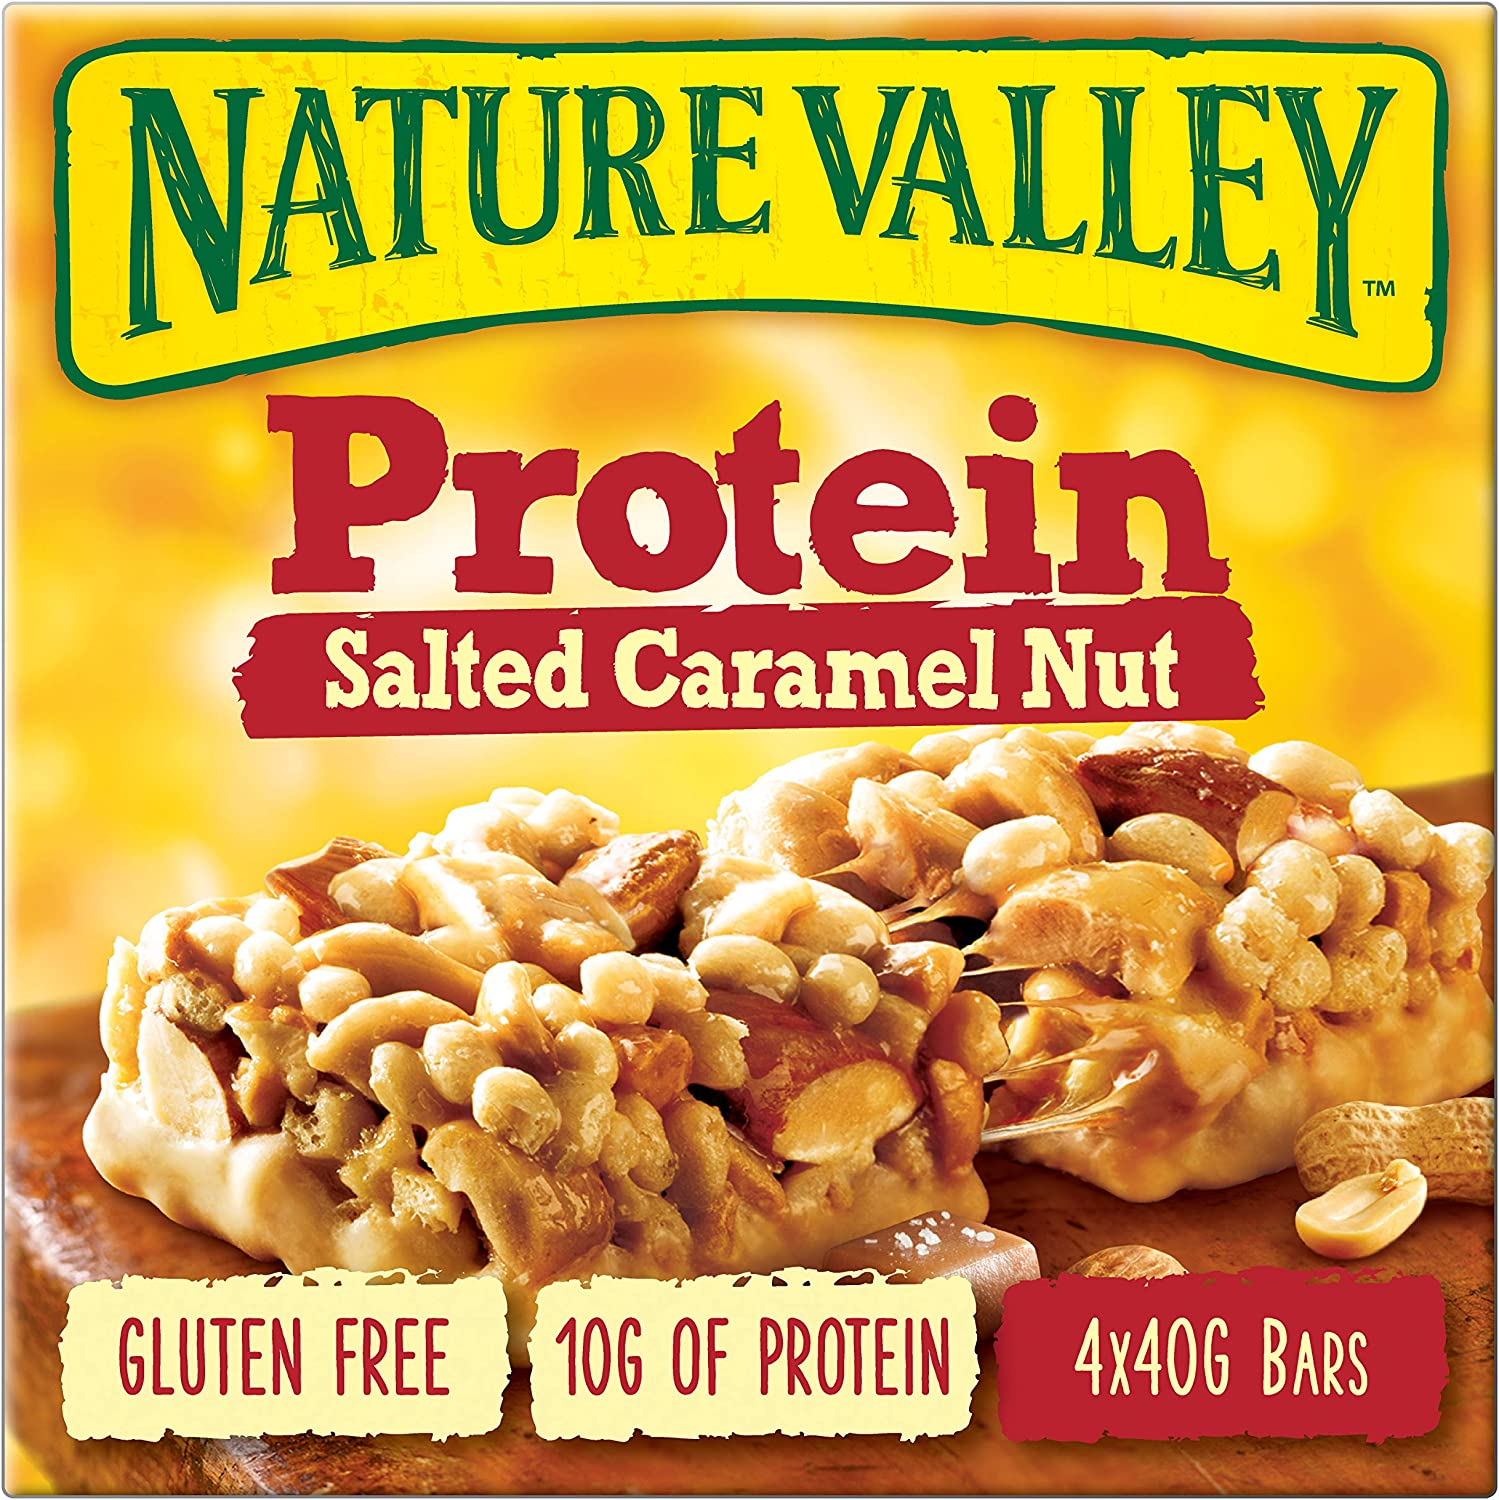 Nature Valley Salted Caramel Nut Bars 4 X 40g Amazon Co Uk Grocery